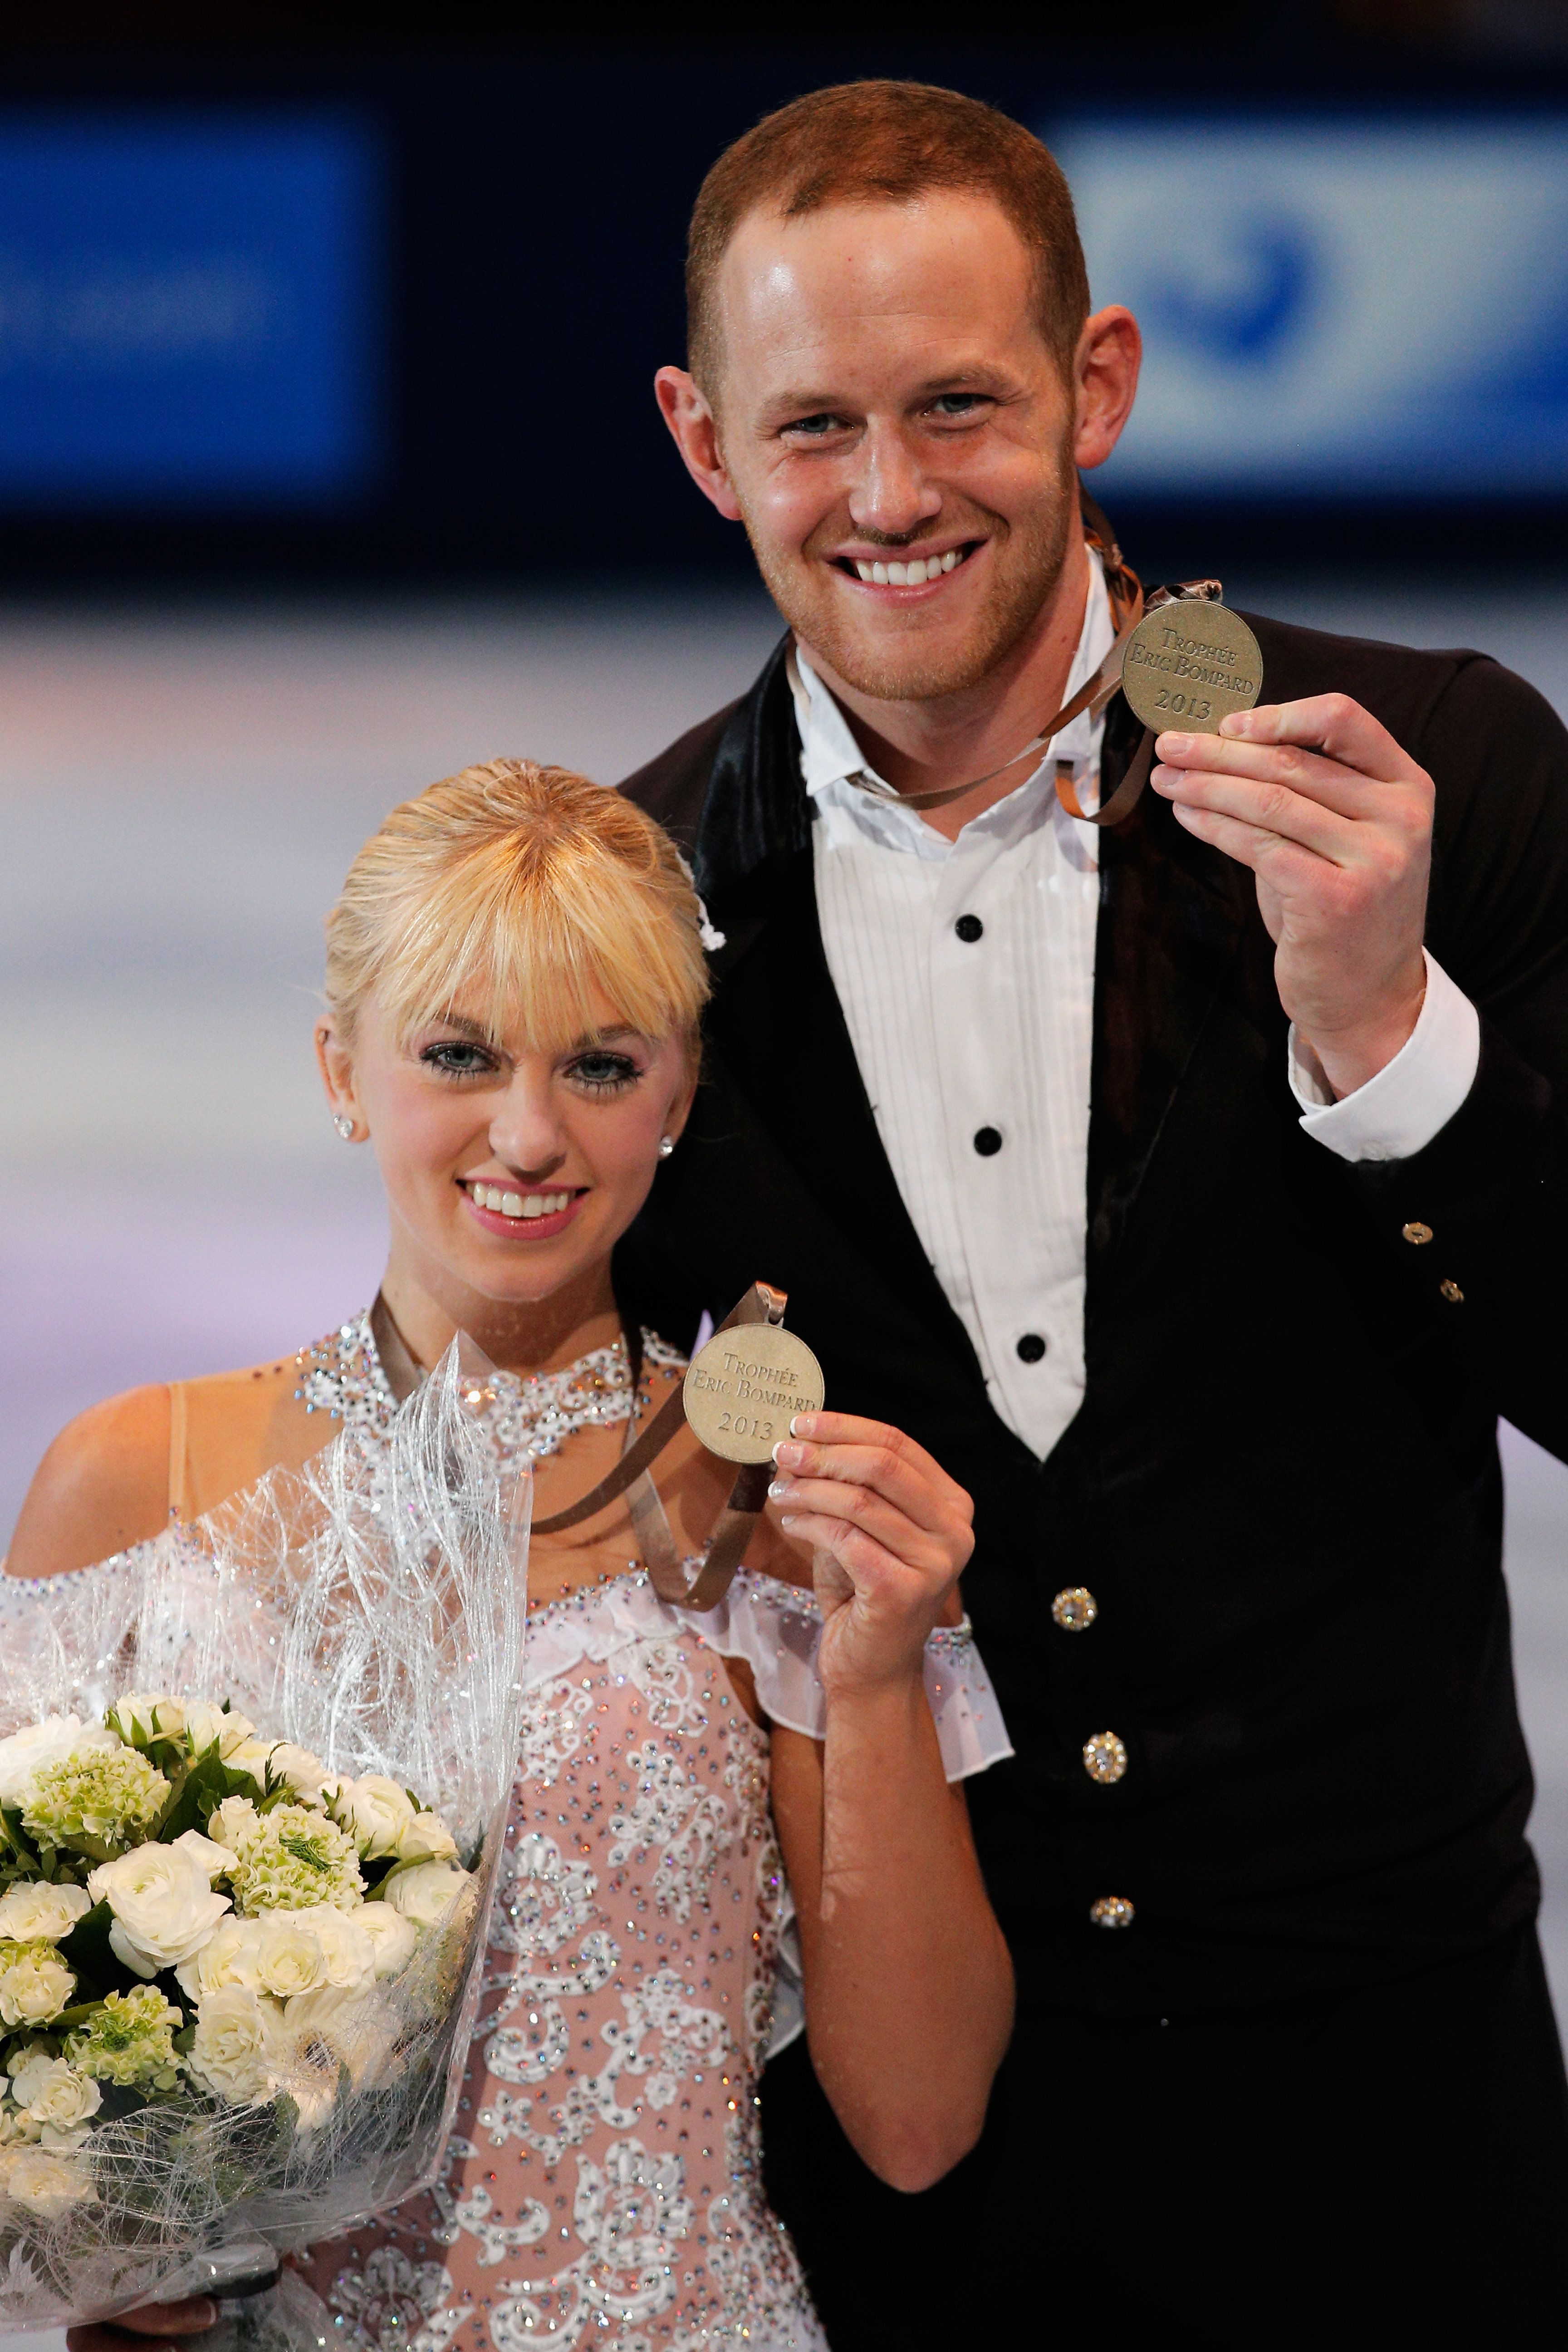 Champion U.S. Figure Skater Found Dead At 33, 1 Day After